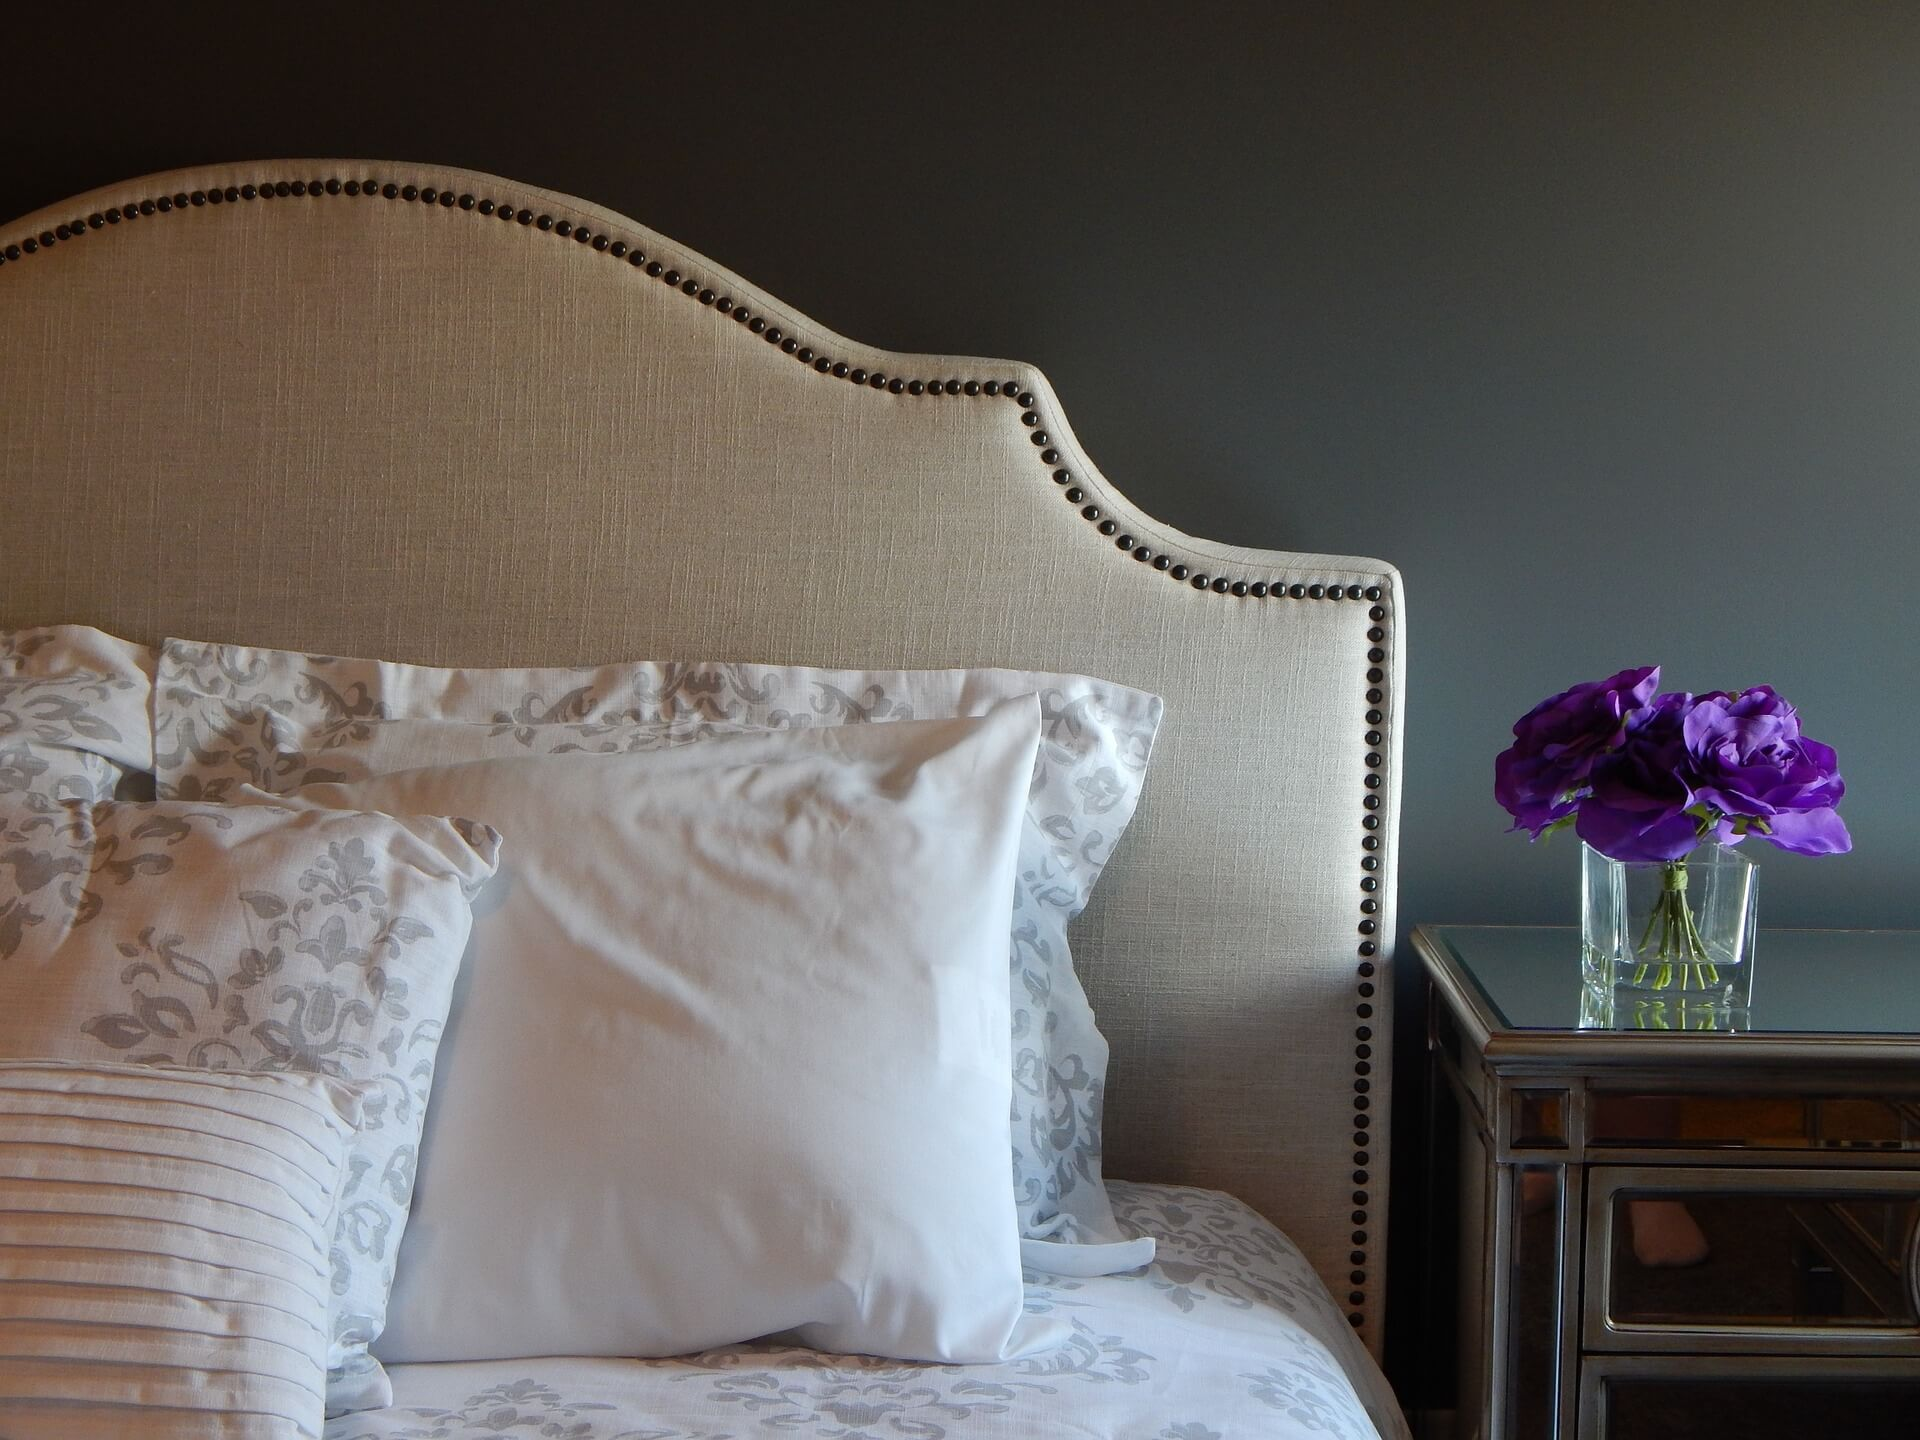 bed with pillows on - Hilary's blinds bedroom makeover competition